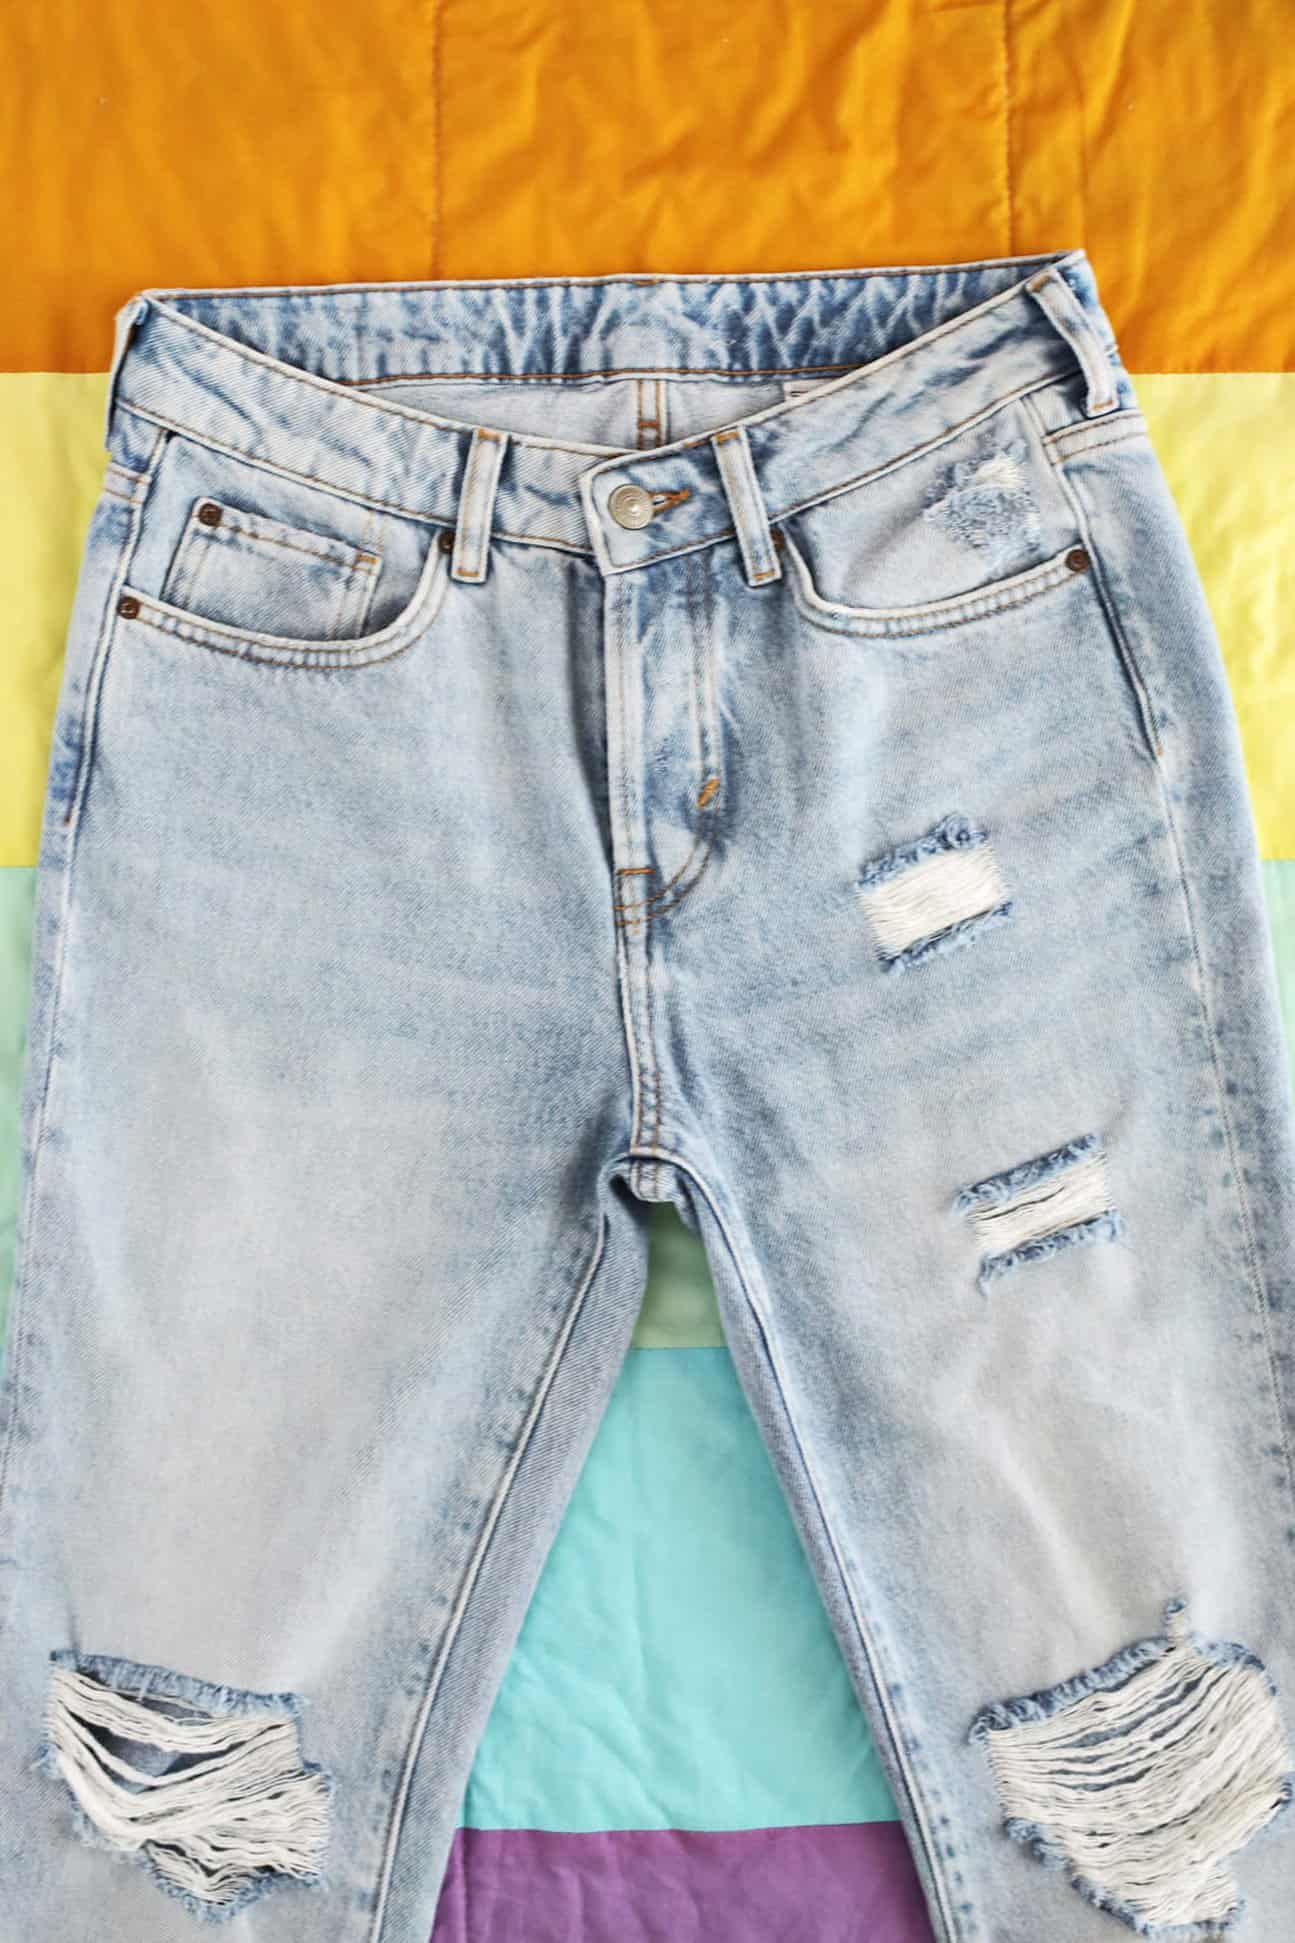 58a4449857d2 ... a pair of jeans that you ve grown a bit tired of or a good method to  customize a skirt if you can t find one the right size color length you  want in the ...